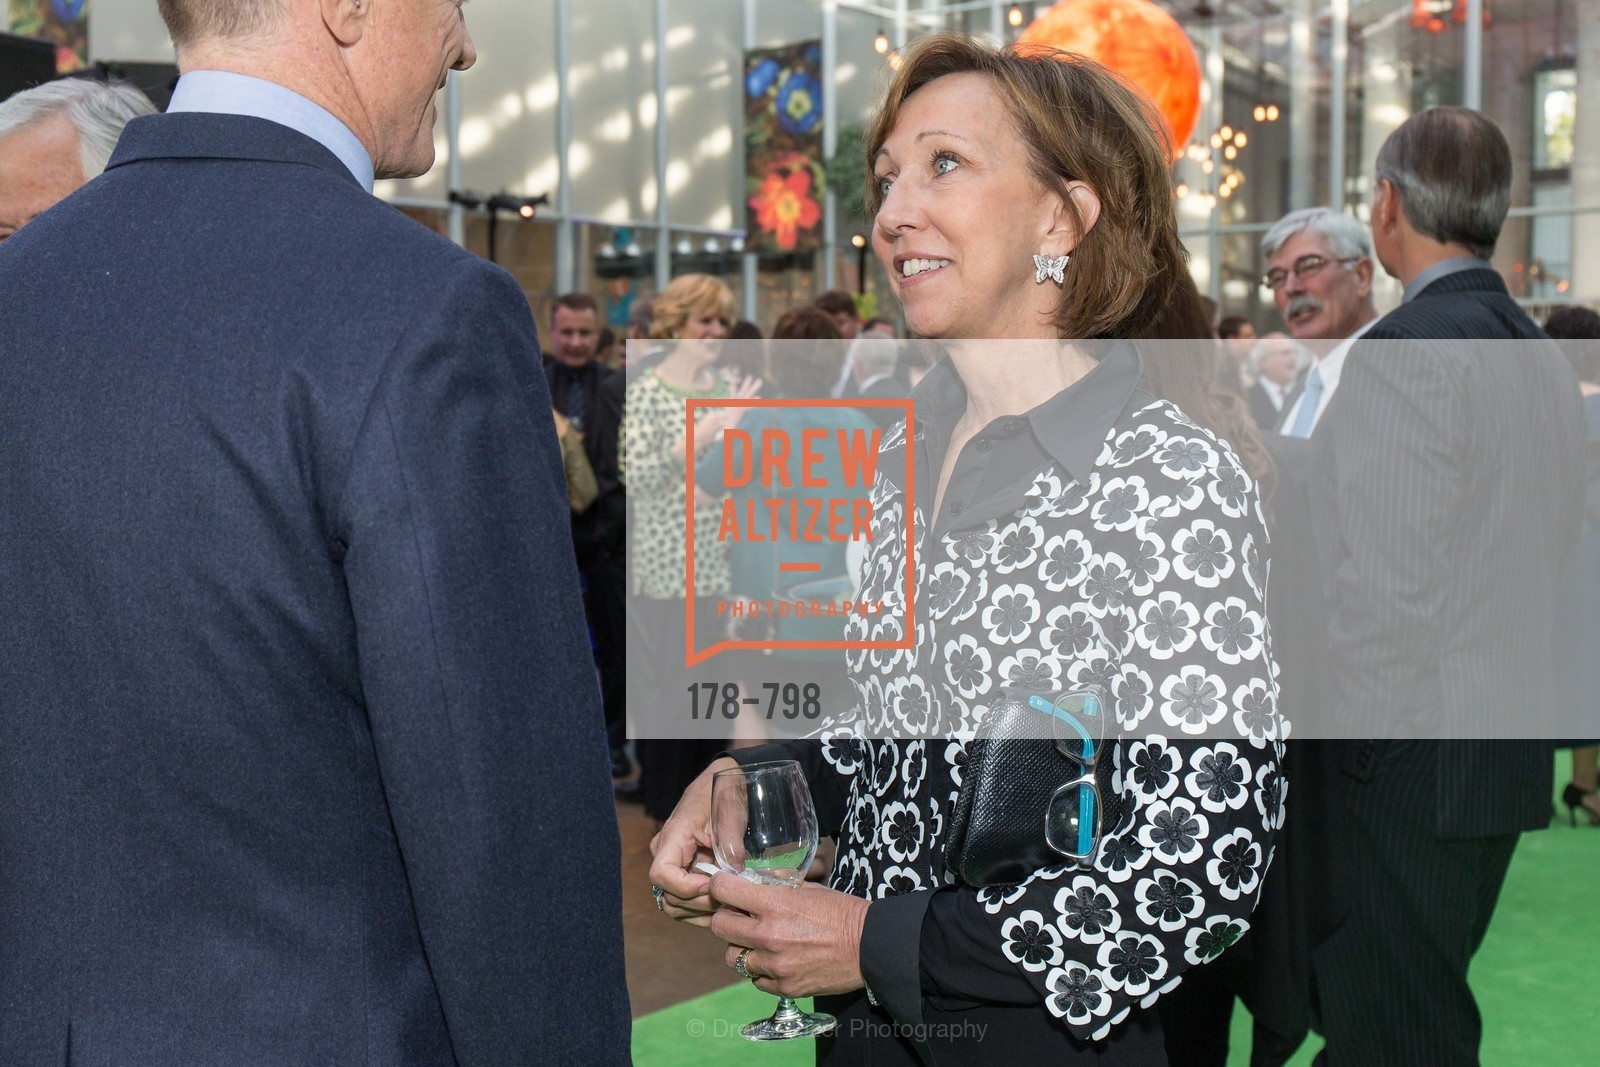 Janice Barger, CALIFORNIA ACADEMY OF SCIENCES - Big Bang Gala 2015, US, April 24th, 2015,Drew Altizer, Drew Altizer Photography, full-service agency, private events, San Francisco photographer, photographer california